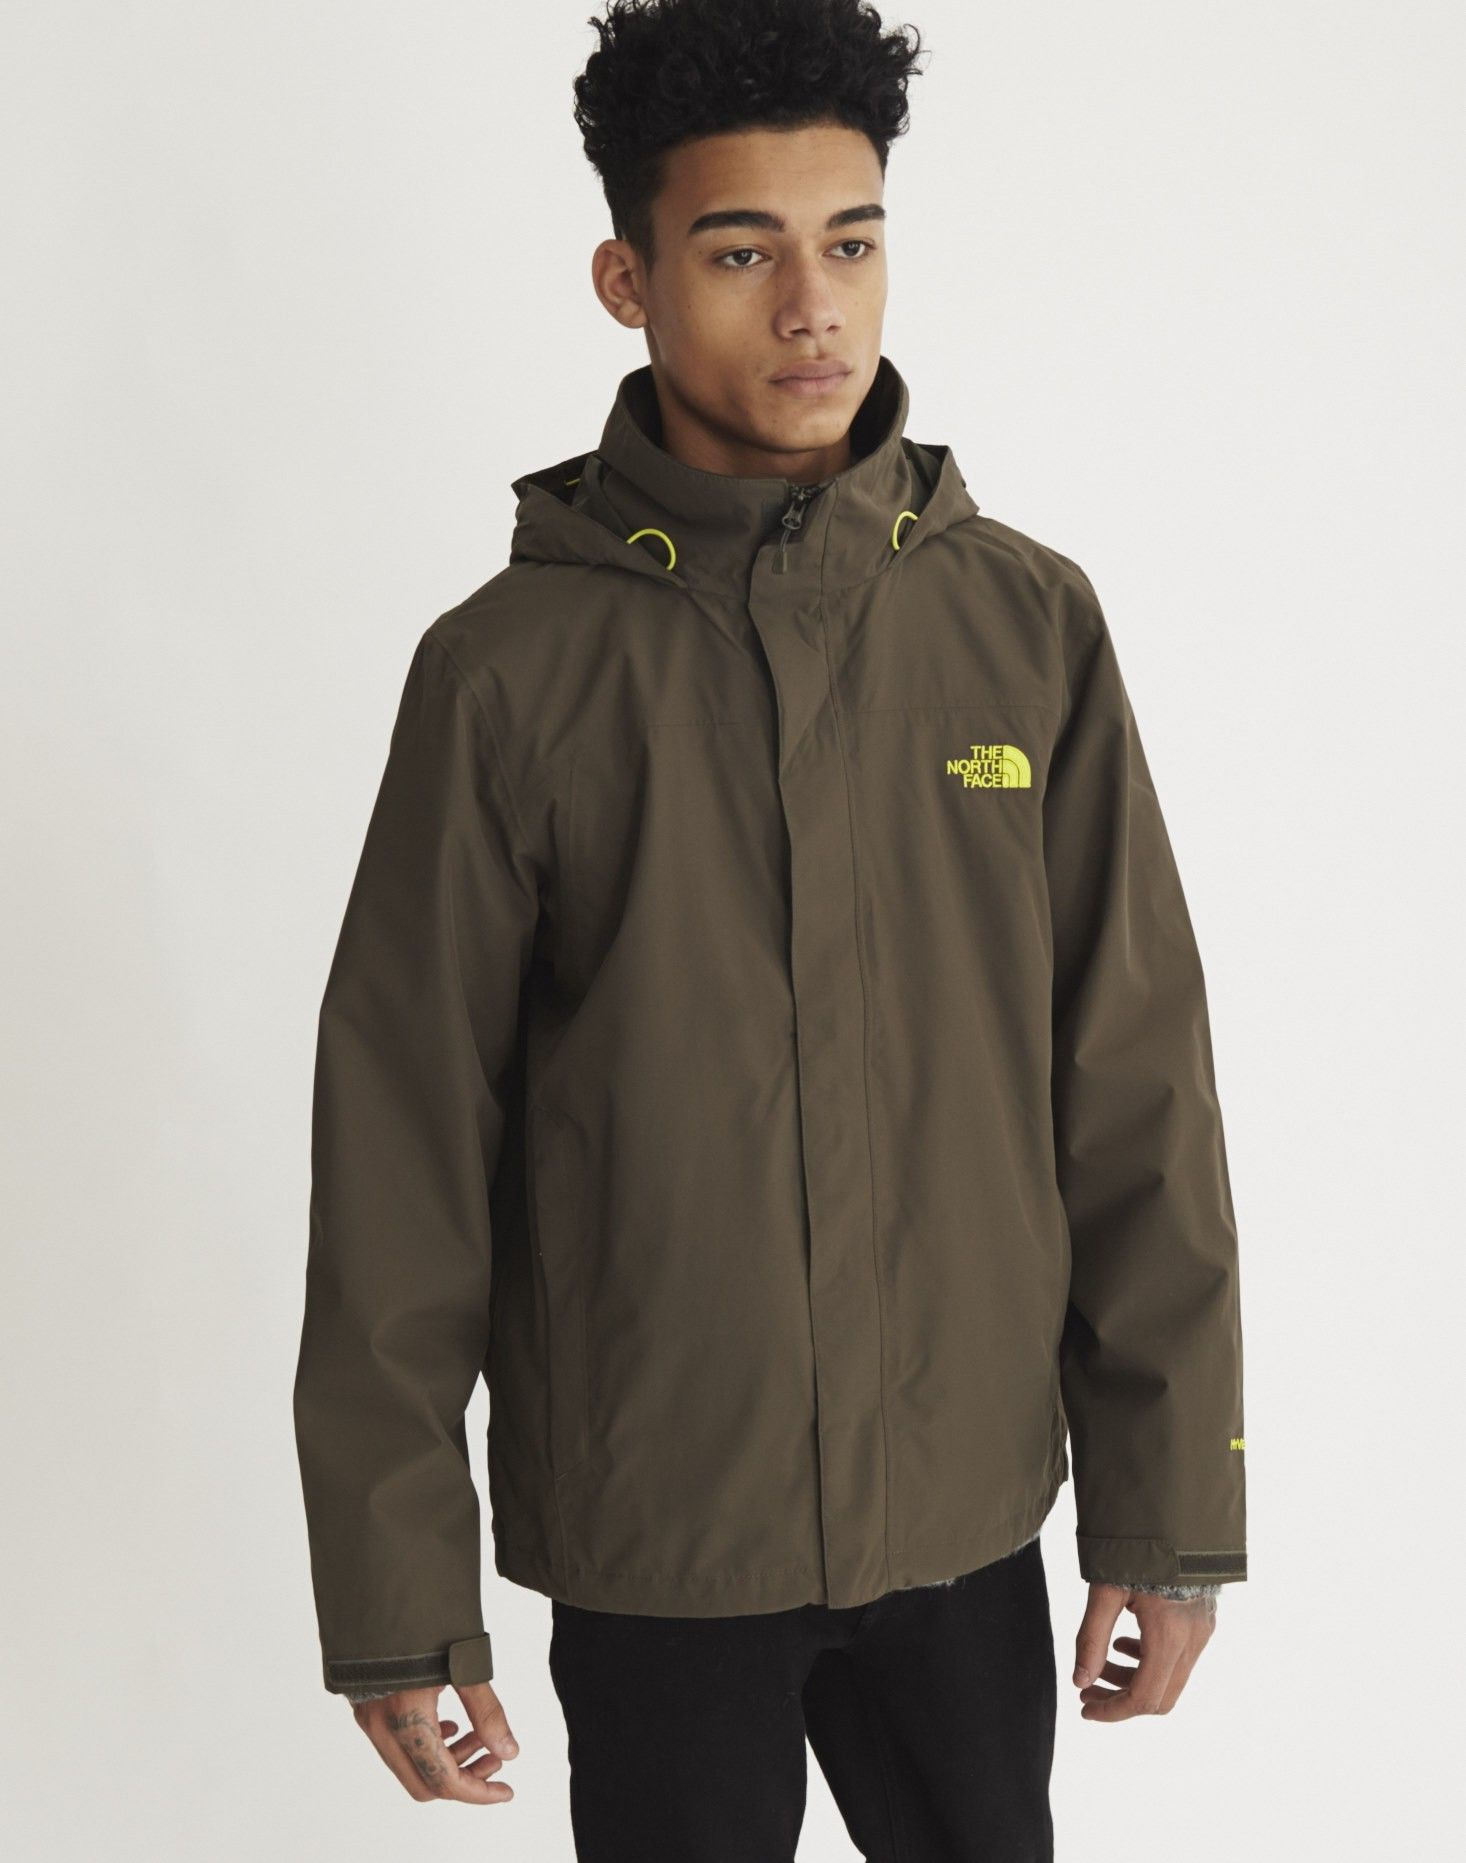 The North Face Sangro Jacket | Shop men's jumpers, sweaters and clothing at  The Idle